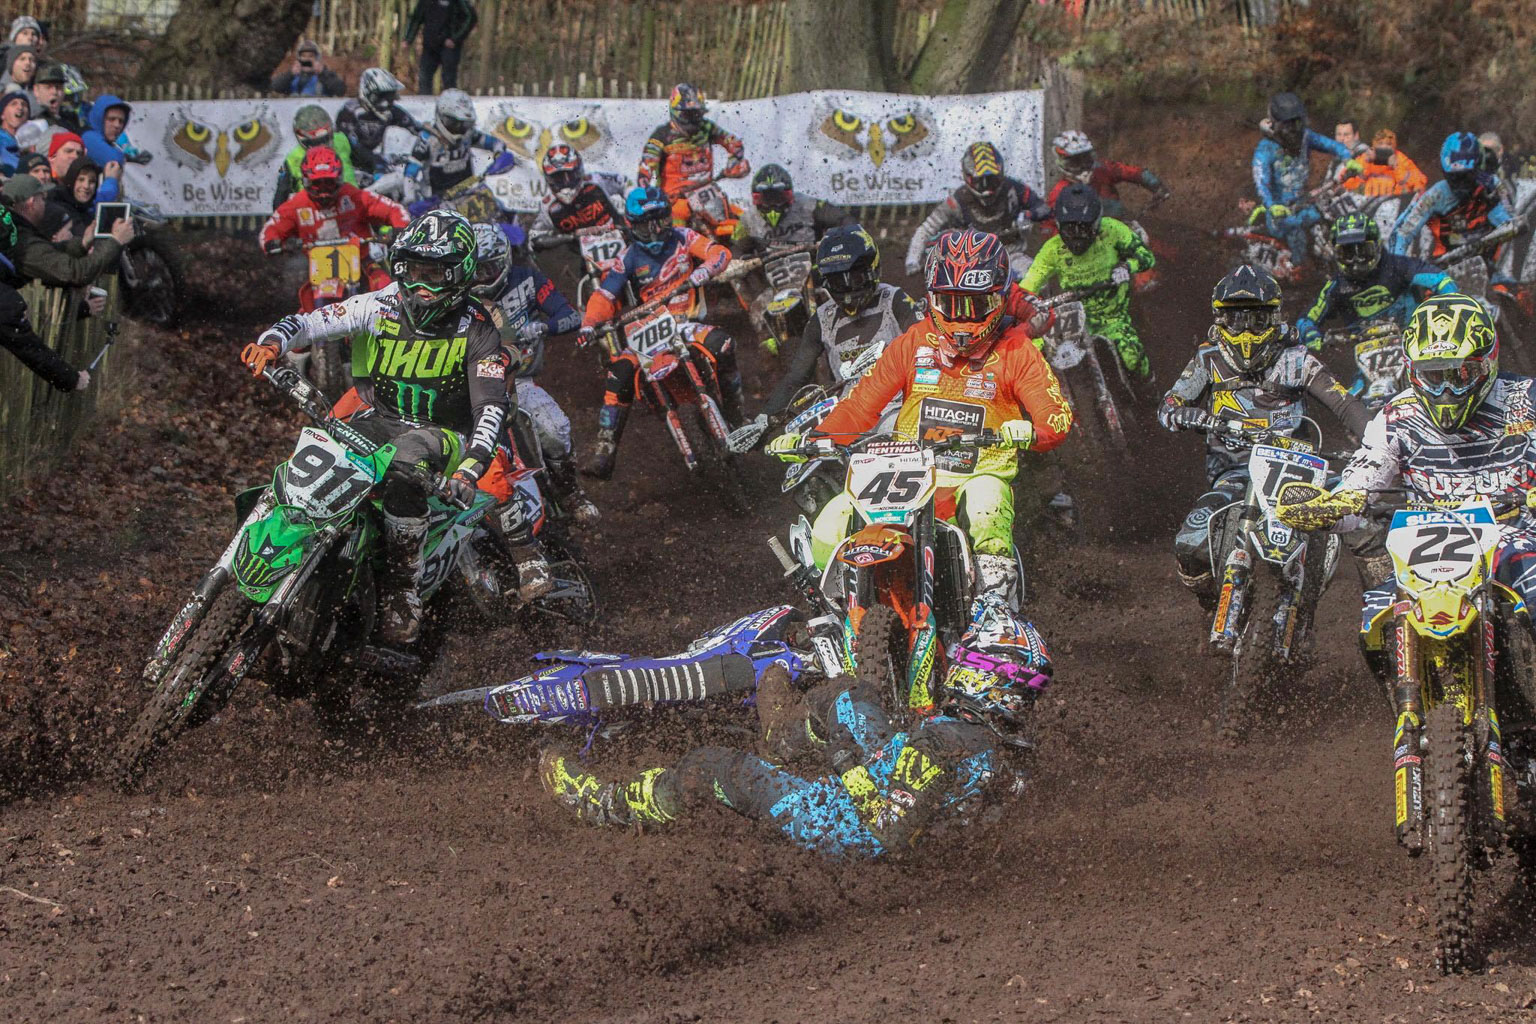 Ouch! Simpson is about to get hit by Jake Nicholls who just couldn't stop